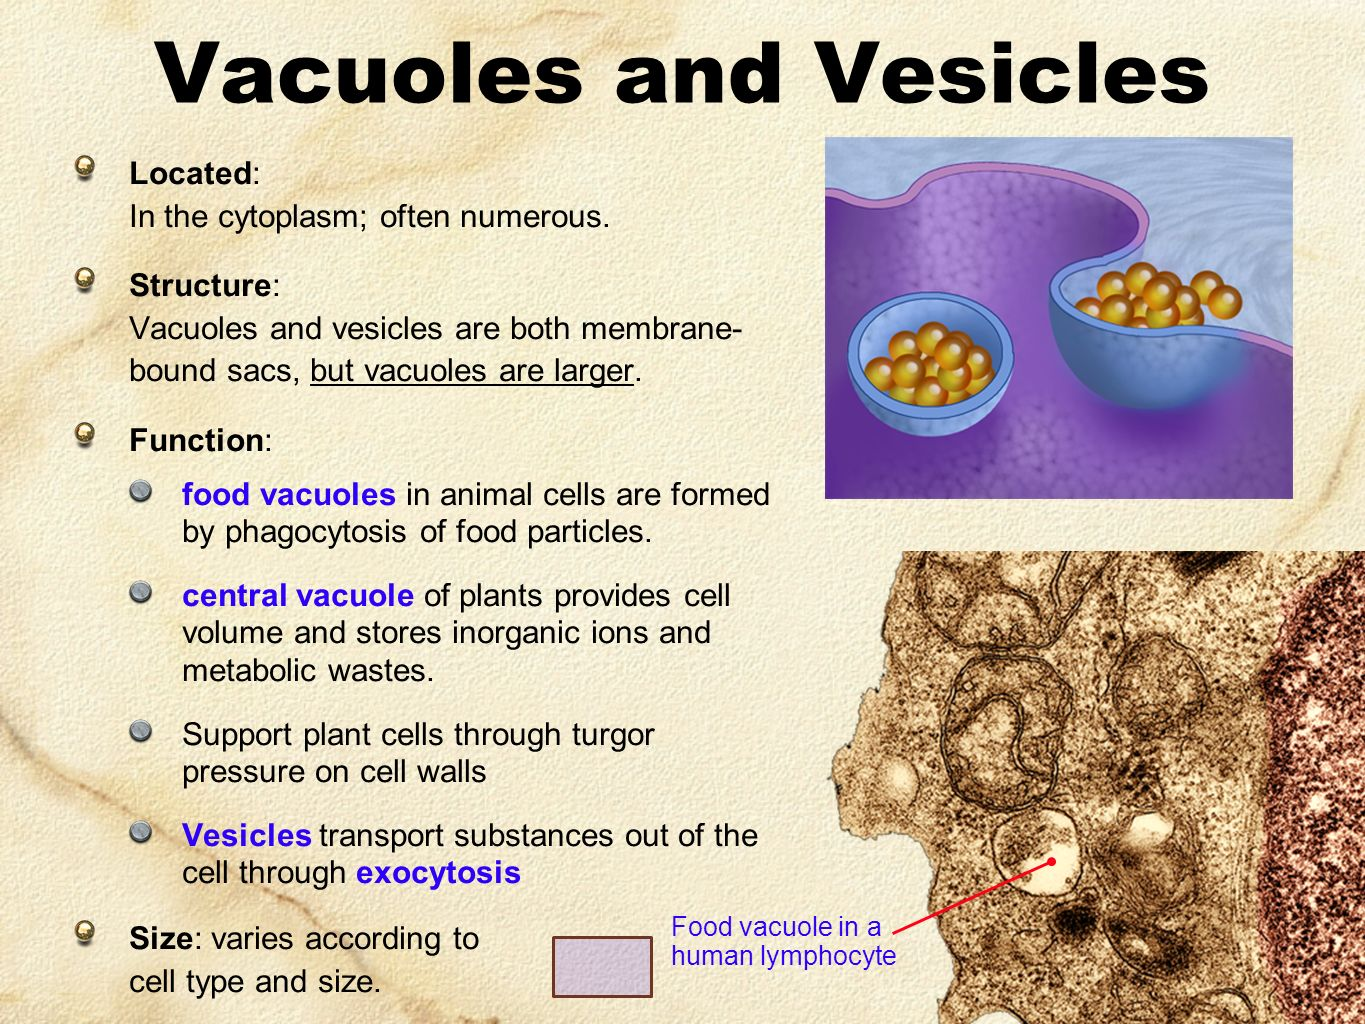 vacuoles and vesicles How to draw a cell from an animal updated on january 23, 2013 patrice m more  vacuoles are vesicles surrounded by membranes that store food and waste products.